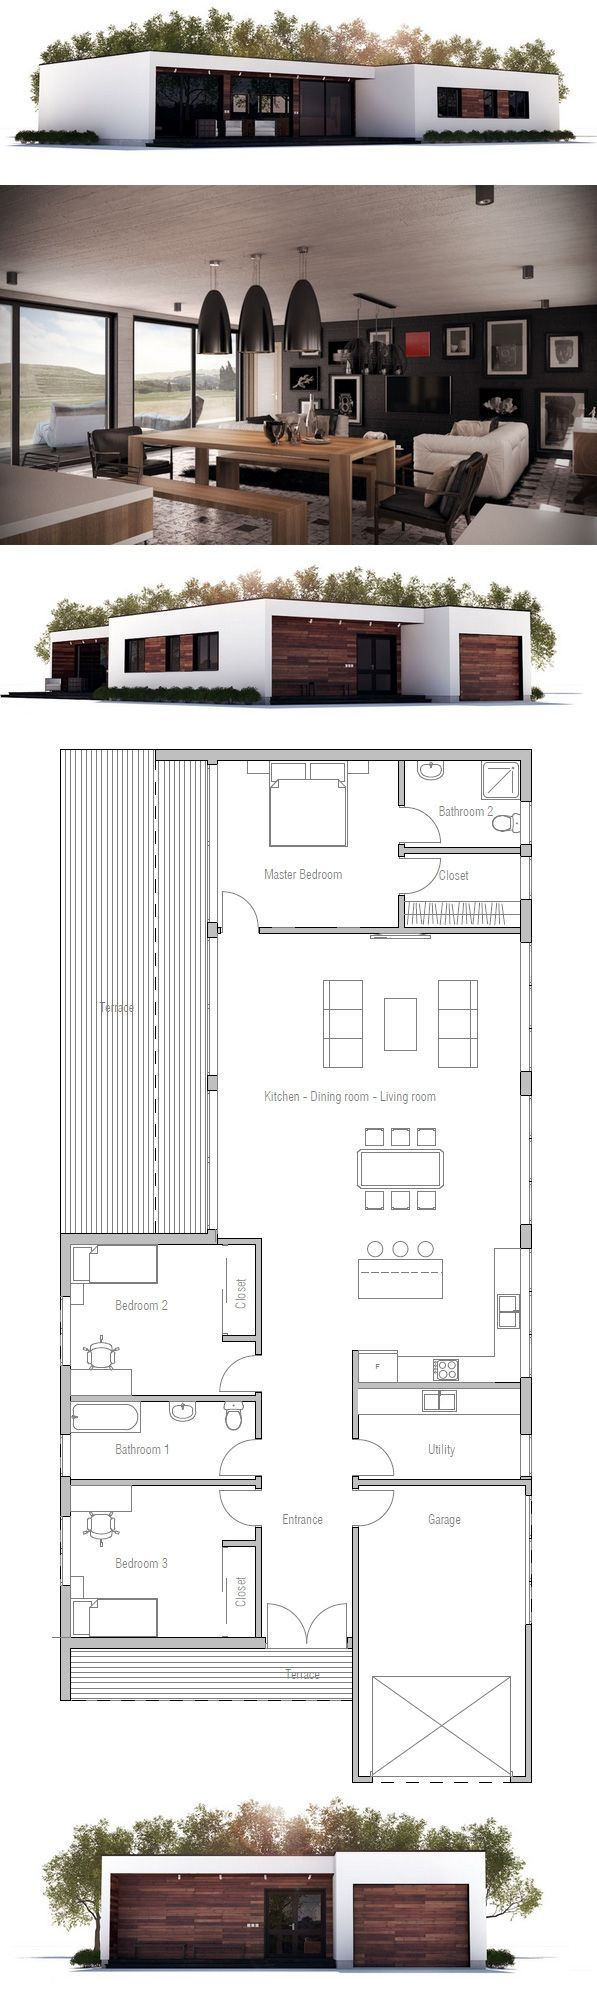 Though this is NOT a shipping container house it is an interesting layout that could be used with shipping containers. Surprise bedroom at the back. Utility room in the front.Narrow House Plan, New Home, Minimalist House Design